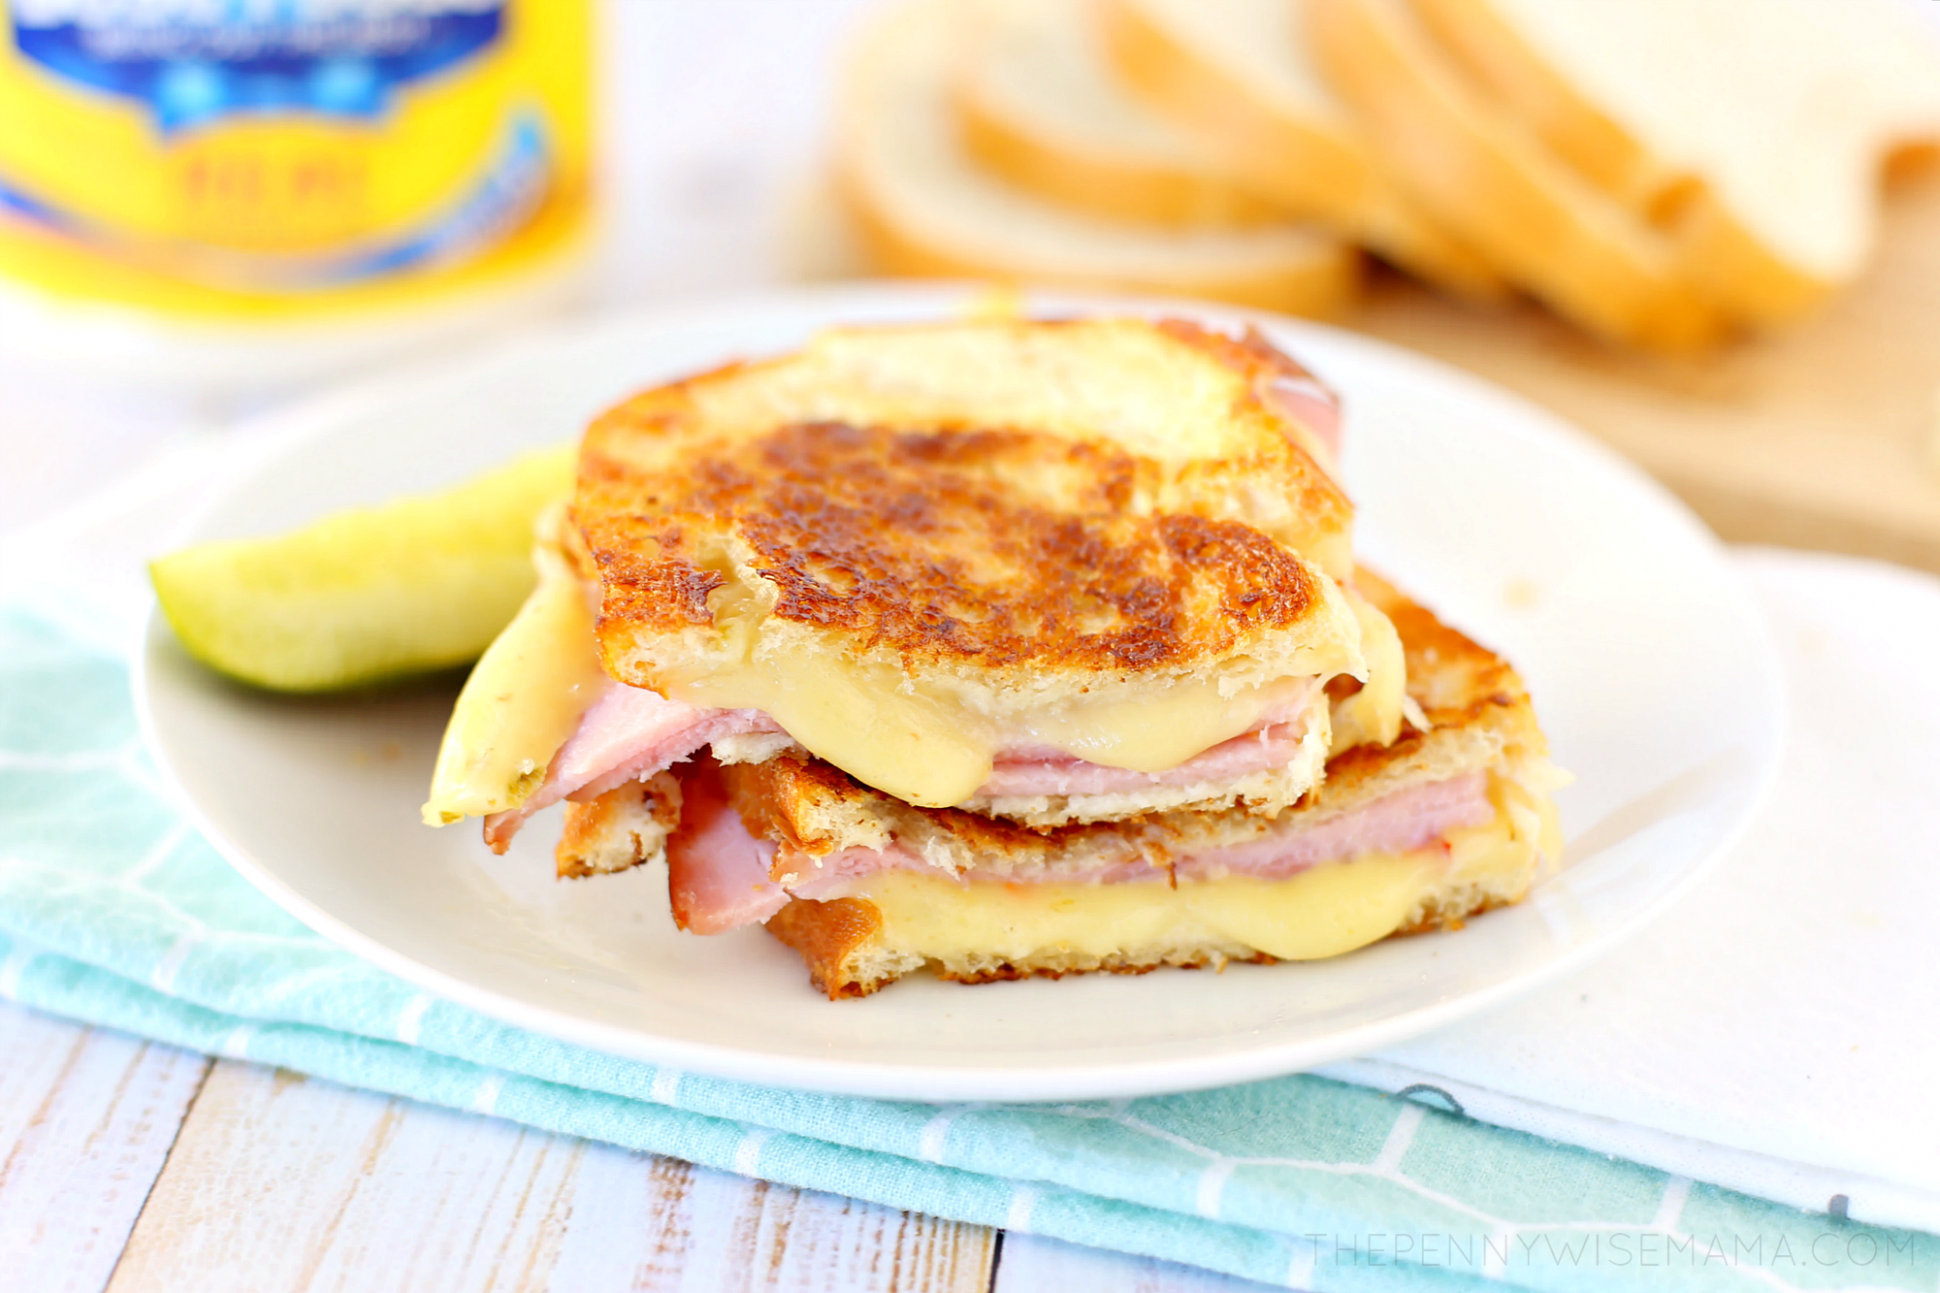 Grilled Ham and Pepper Jack Cheese Sandwich with Mayo - The ..